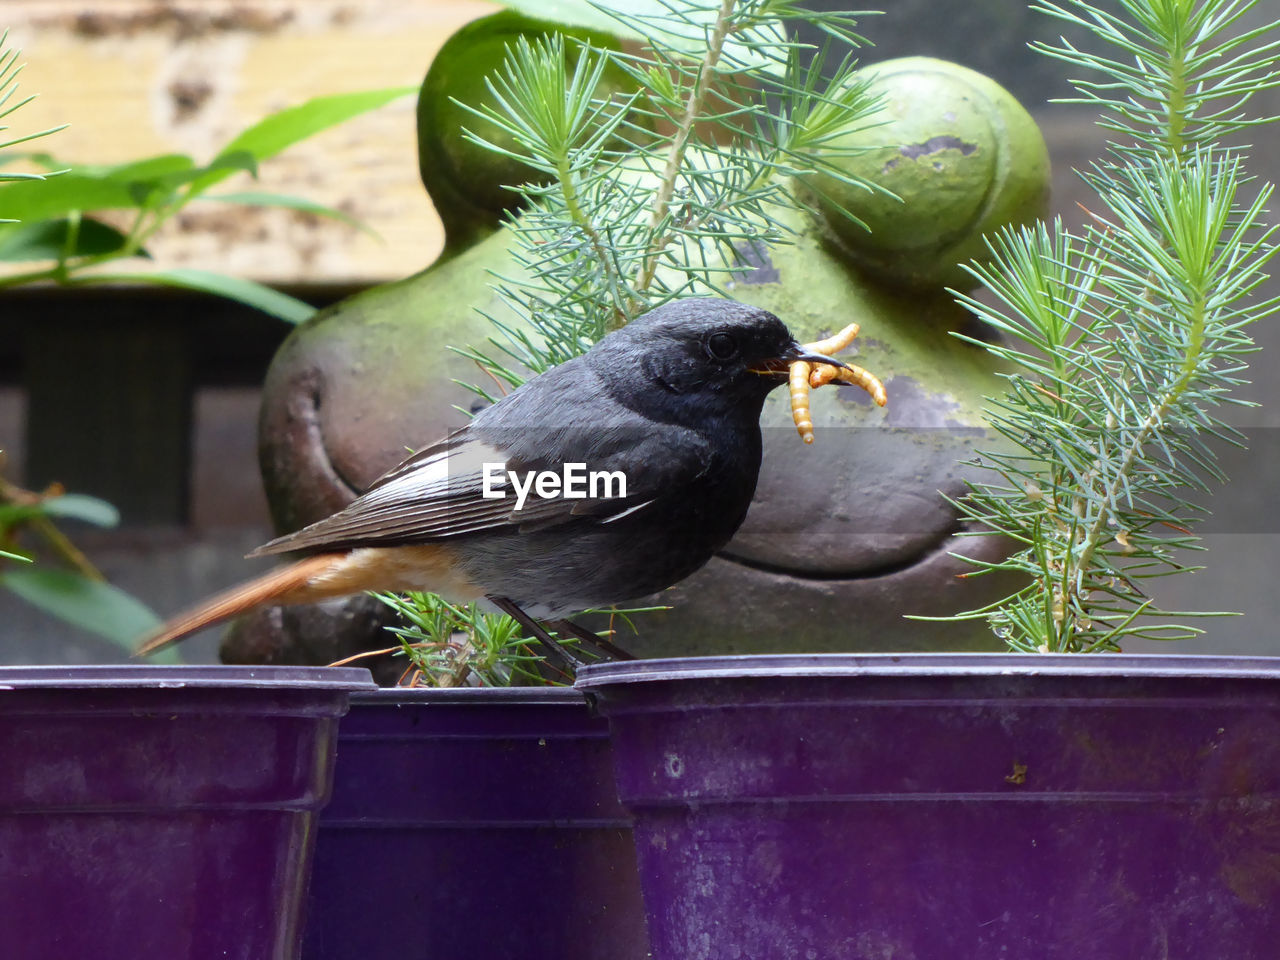 bird, vertebrate, animal, animal themes, animals in the wild, animal wildlife, day, nature, perching, one animal, plant, no people, green color, focus on foreground, potted plant, metal, outdoors, close-up, plant part, blackbird